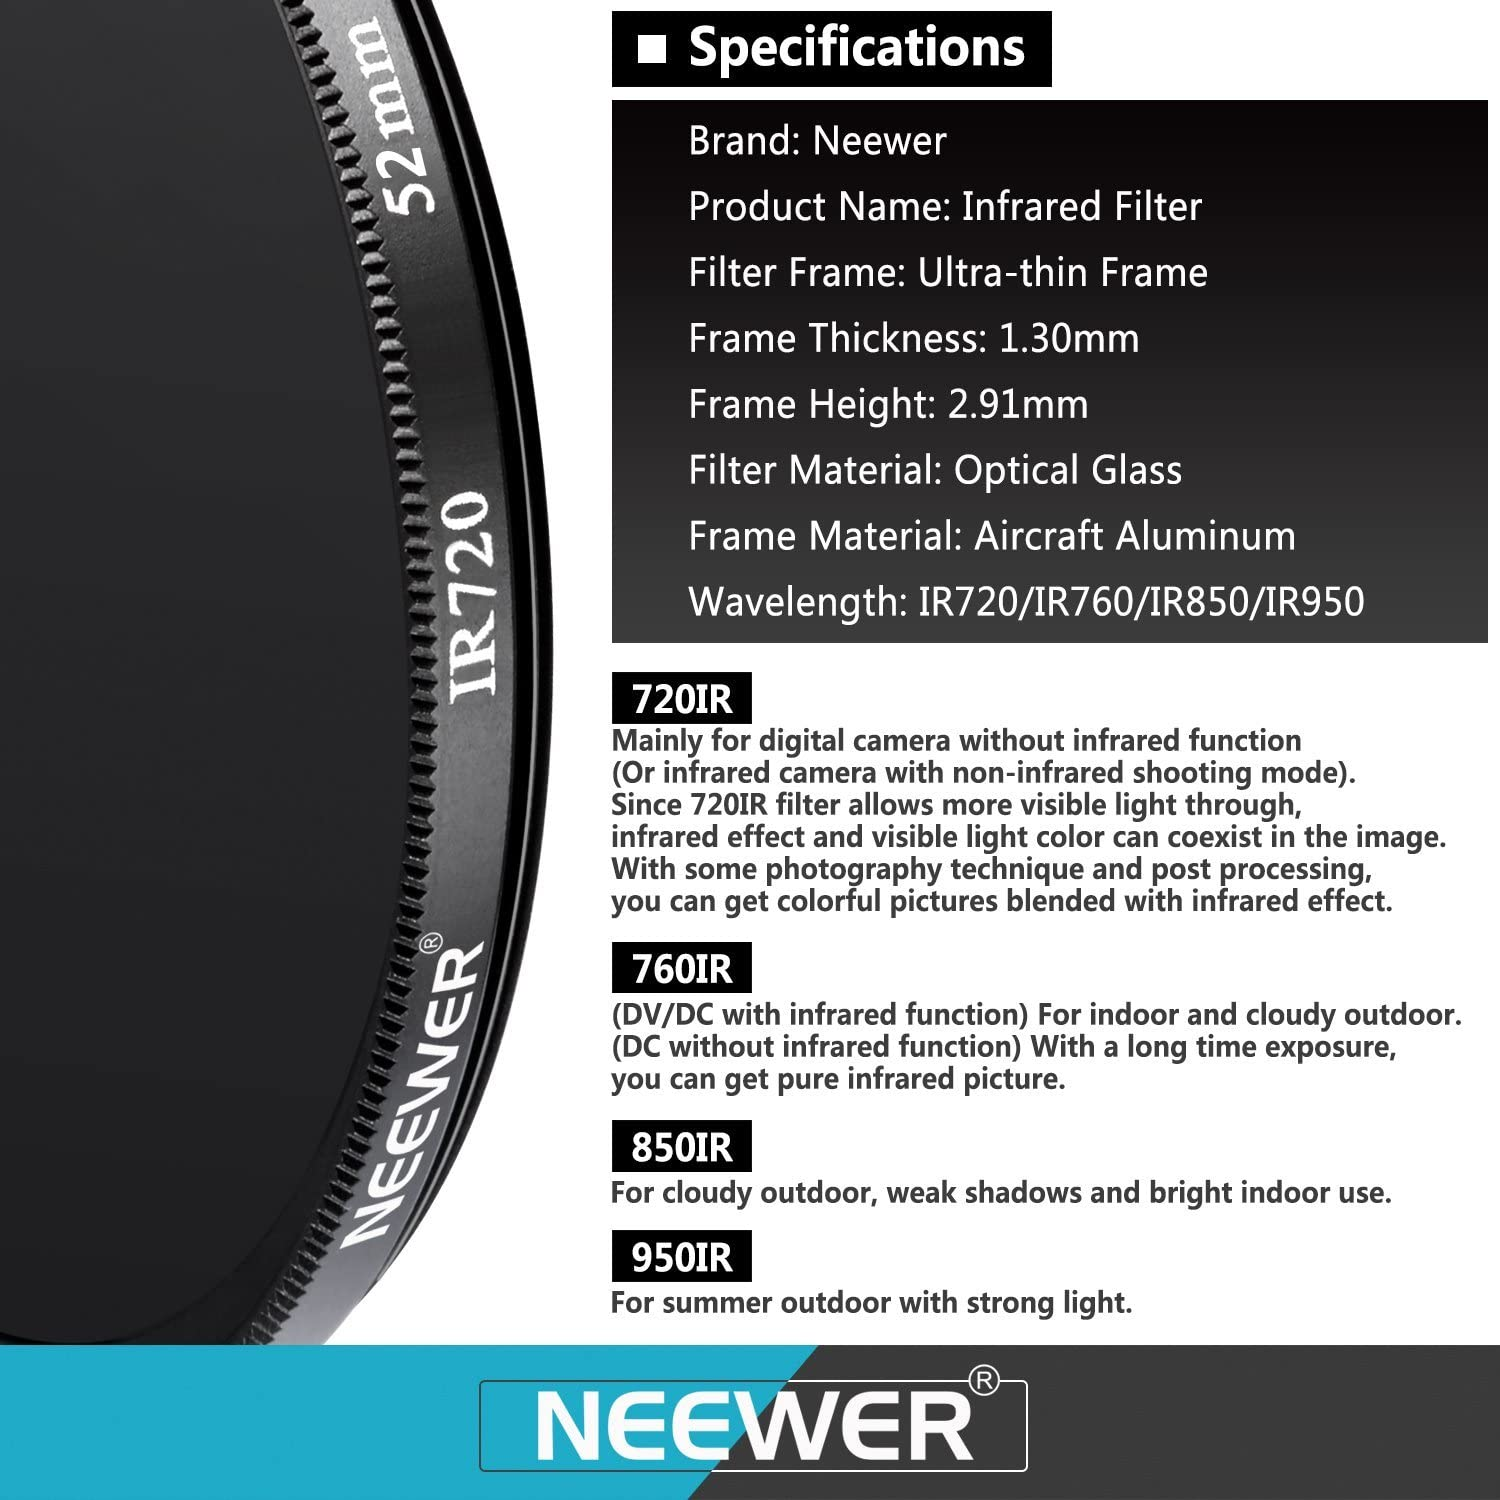 Neewer 52MM 4pcs IR720 IR760 IR850 IR950 Infrared Filters with Carrying Pouch